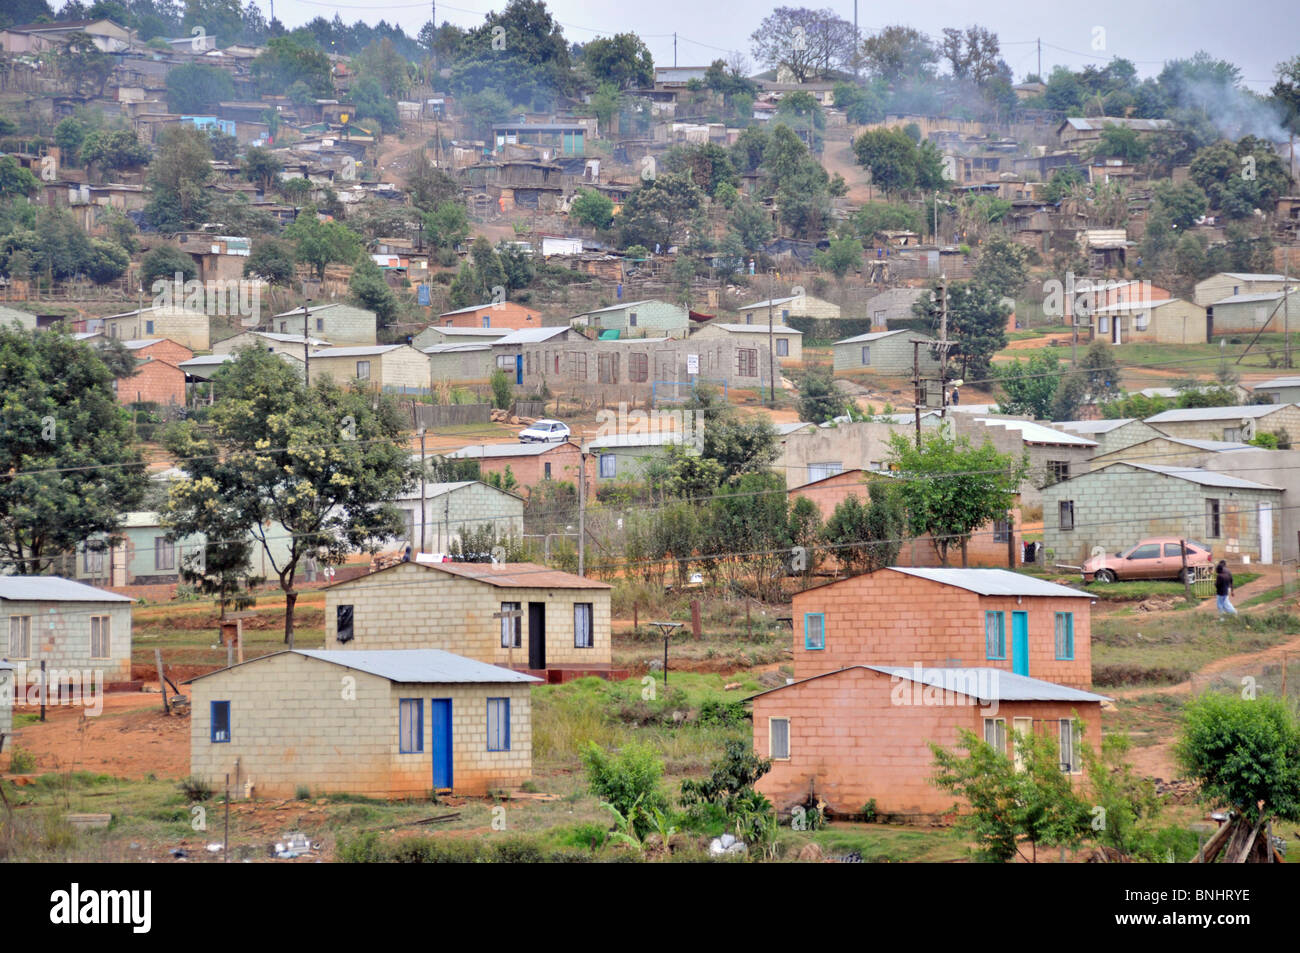 Township Sabie South Africa Africa Black Africans Houses Settlement Village - Stock Image